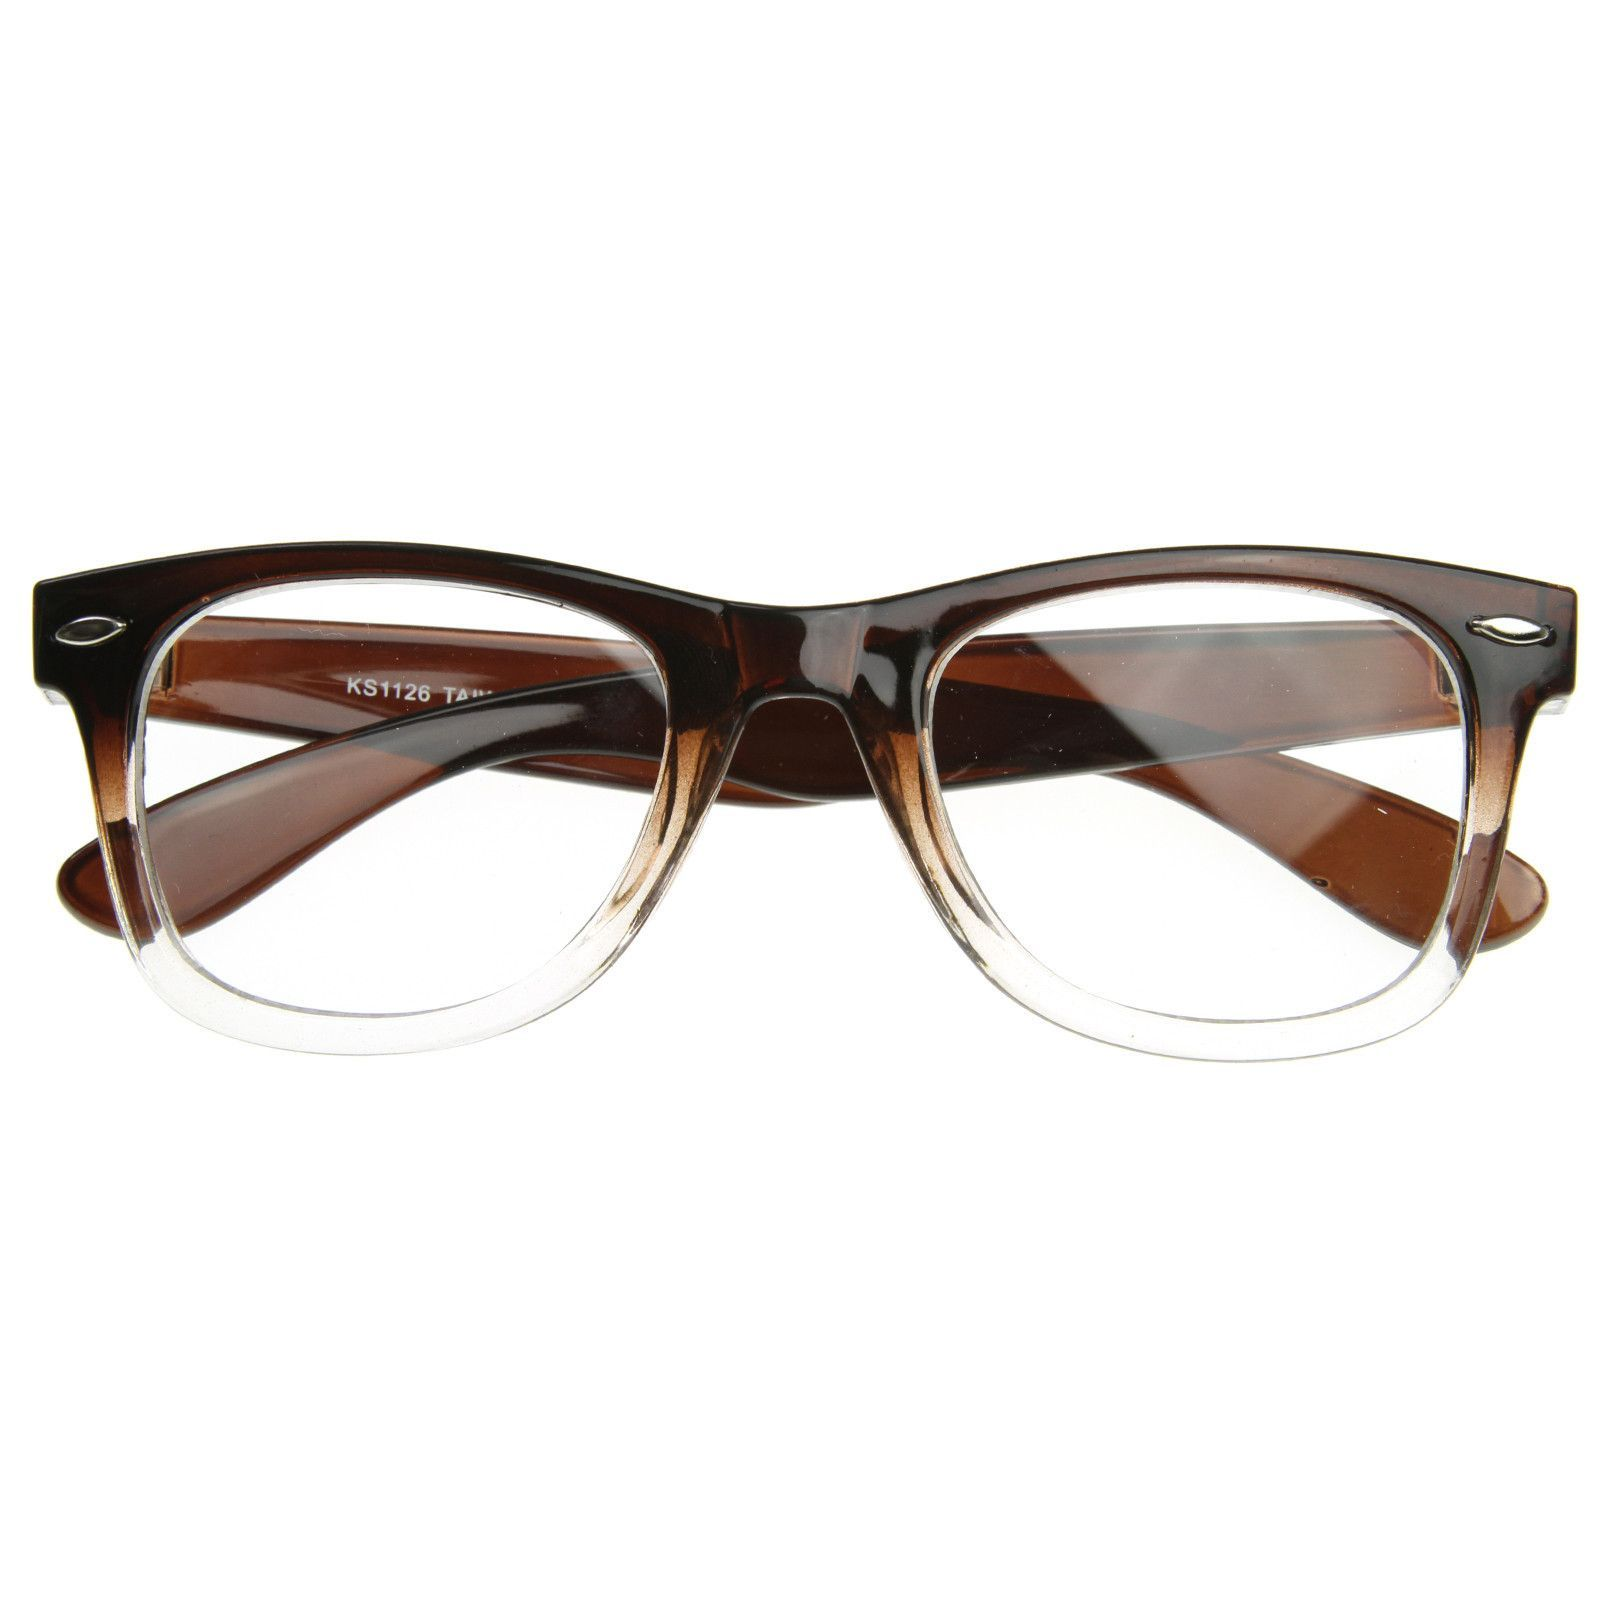 0920108a5dd Two Tone Retro Color Fade Clear Lens Horned Rim Glasses 8536